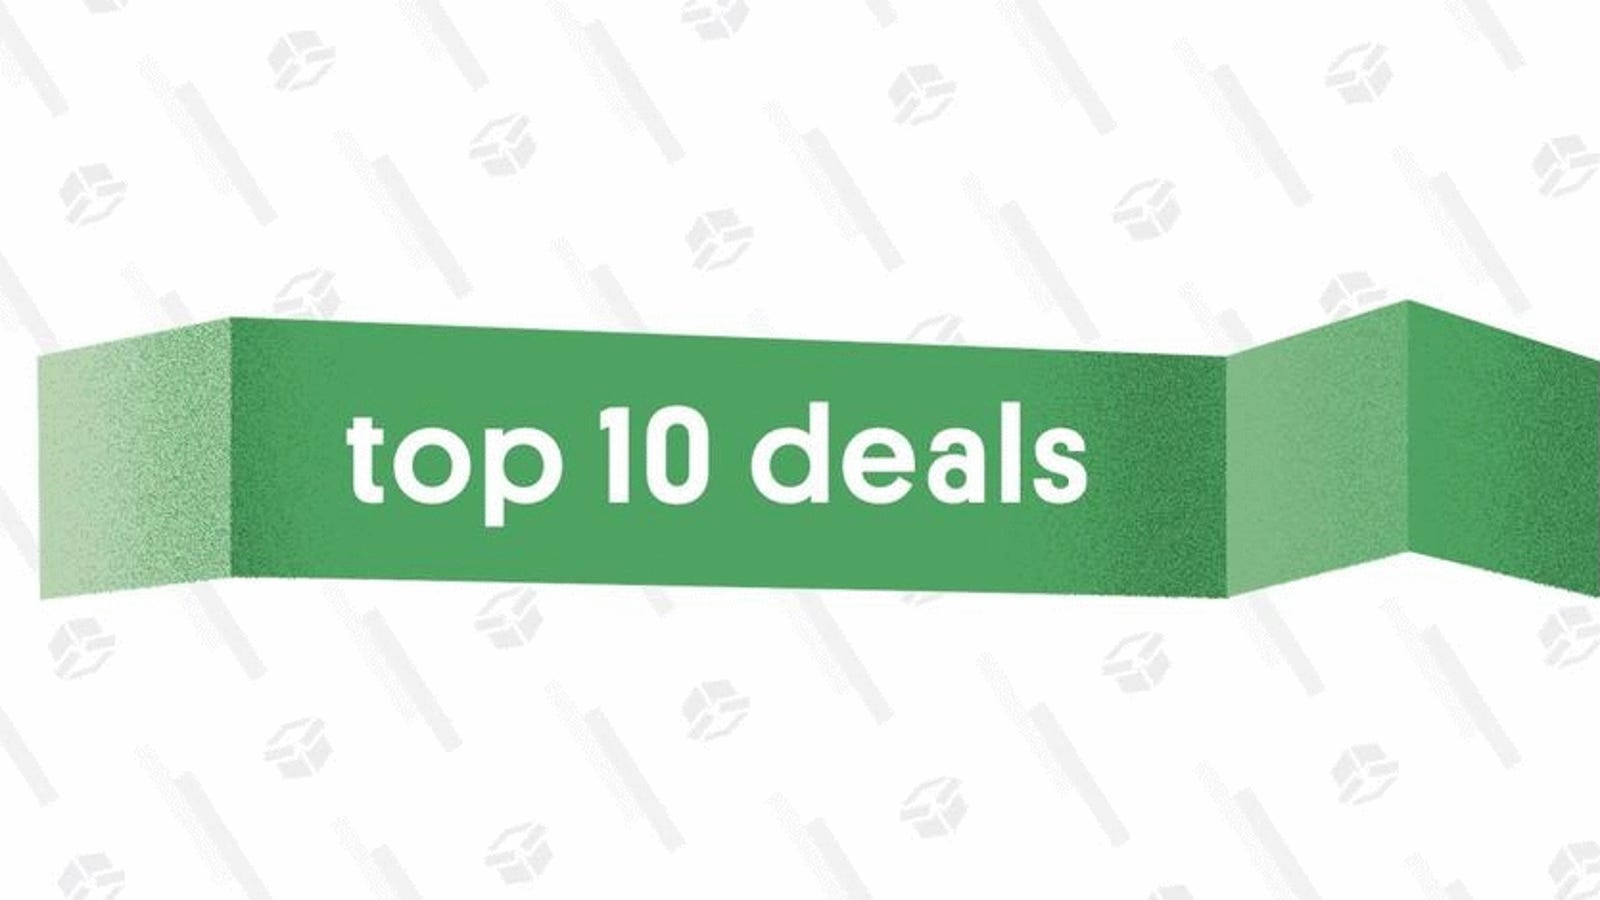 The 10 Best Deals of August 13, 2019